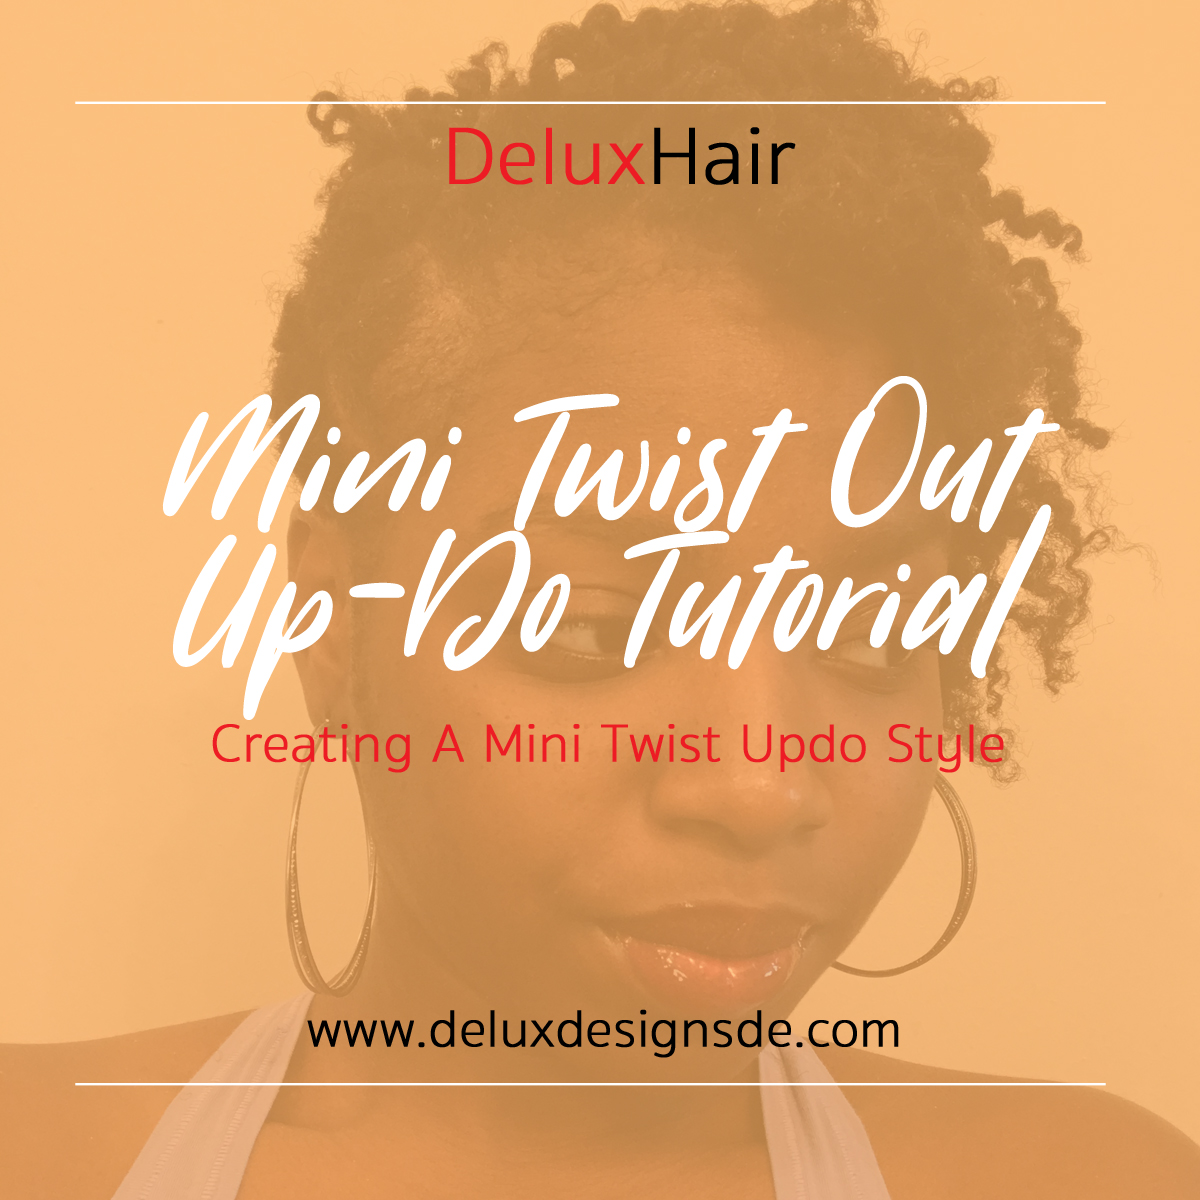 DeluxHair - Mini Twist Out Up-Do Style